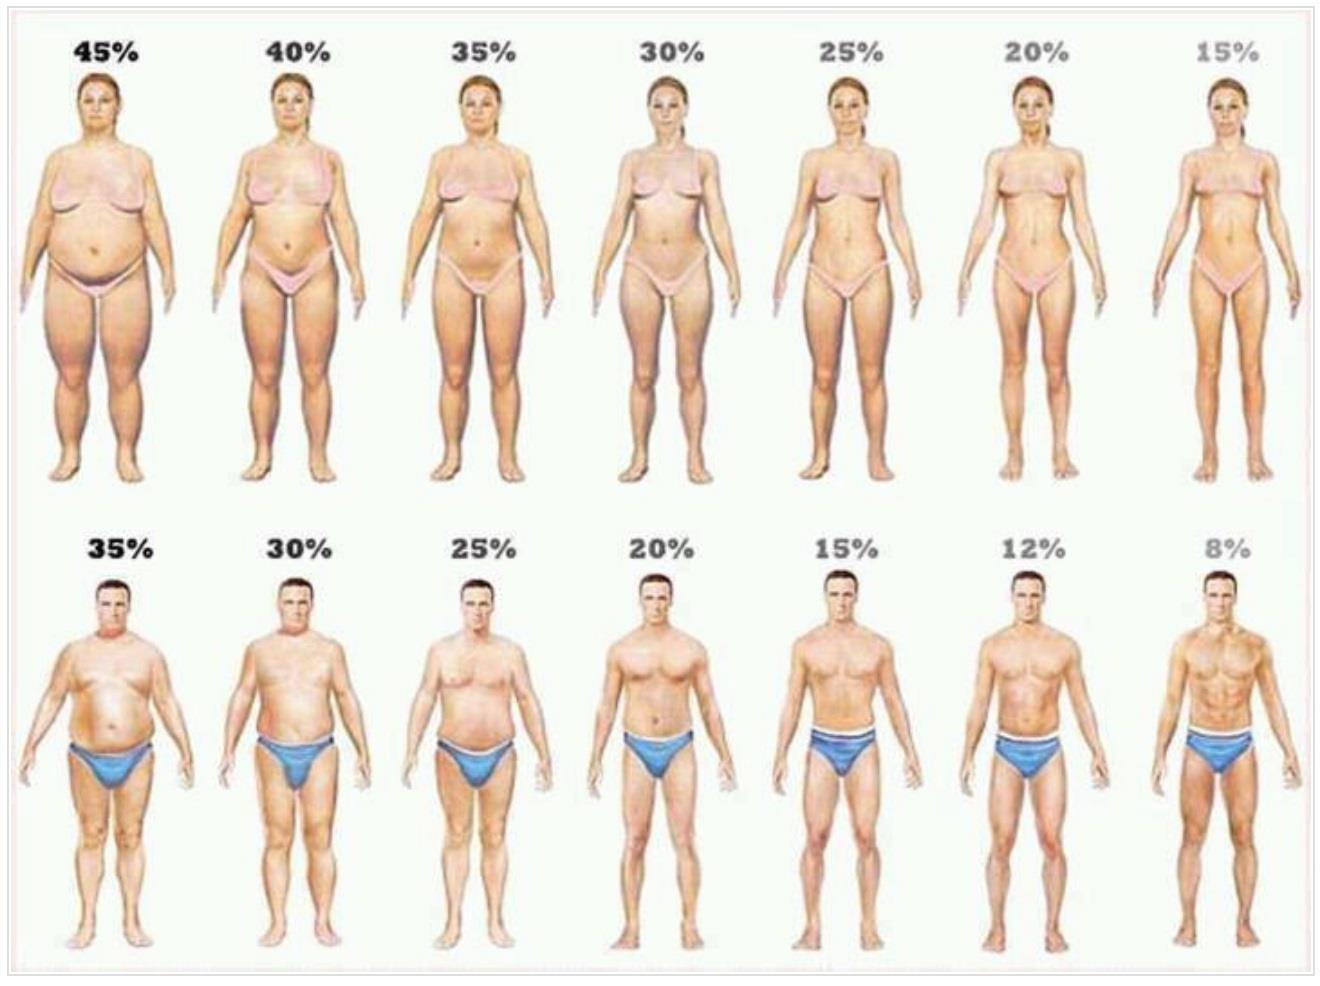 body fat percentage looks like